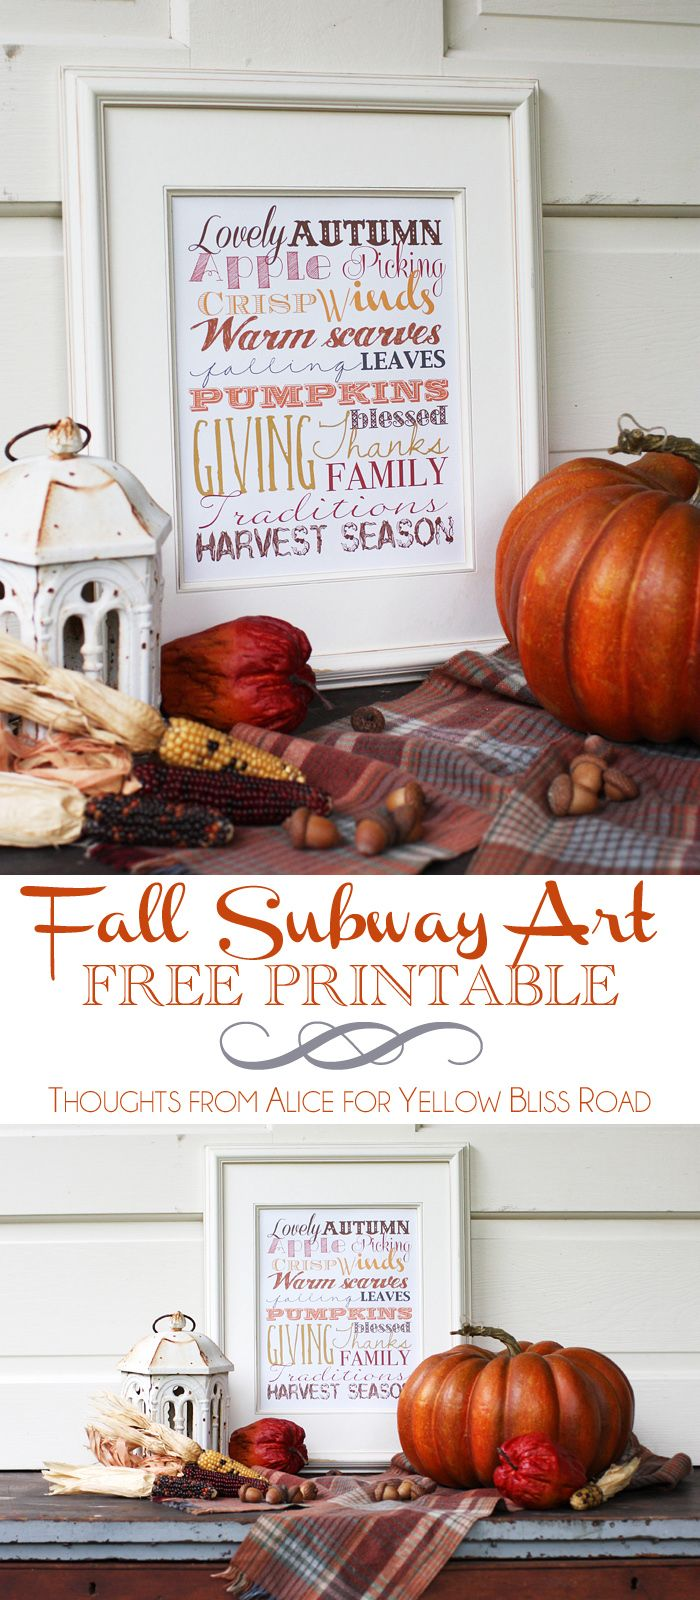 Fall Subway Art Free Printable- pop in a simple frame for easy fall decor.